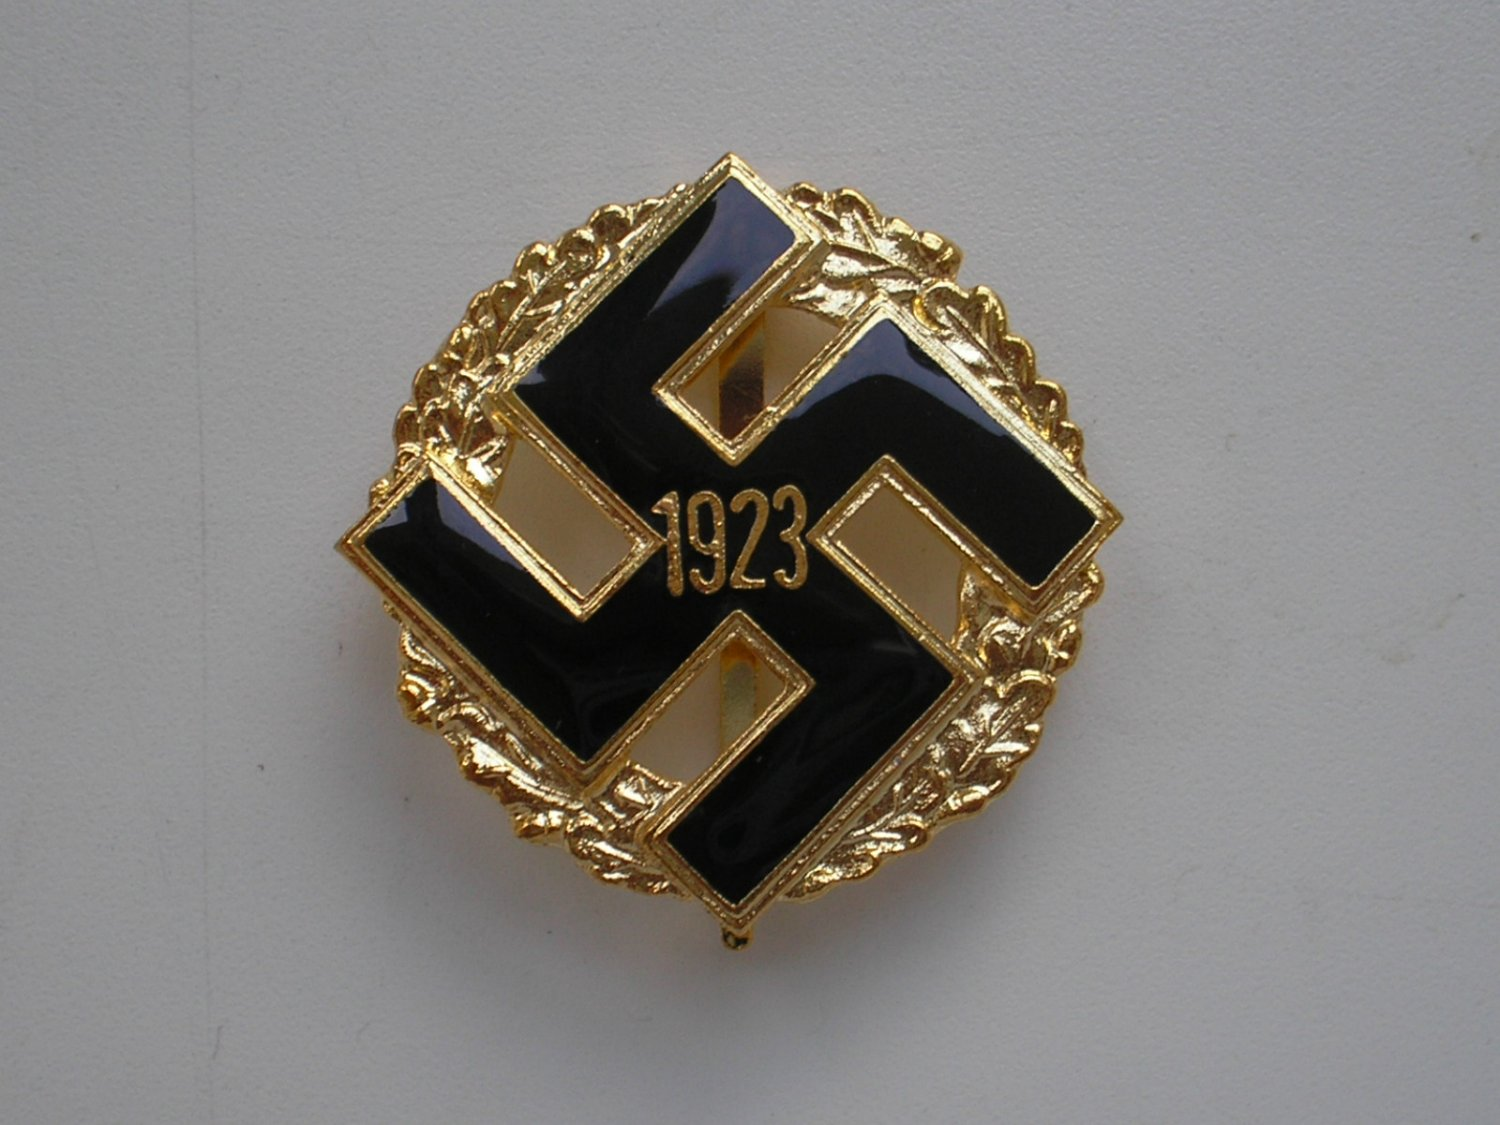 WWII THE GERMAN GOLD GENERAL GAU HONOR BADGE 1923